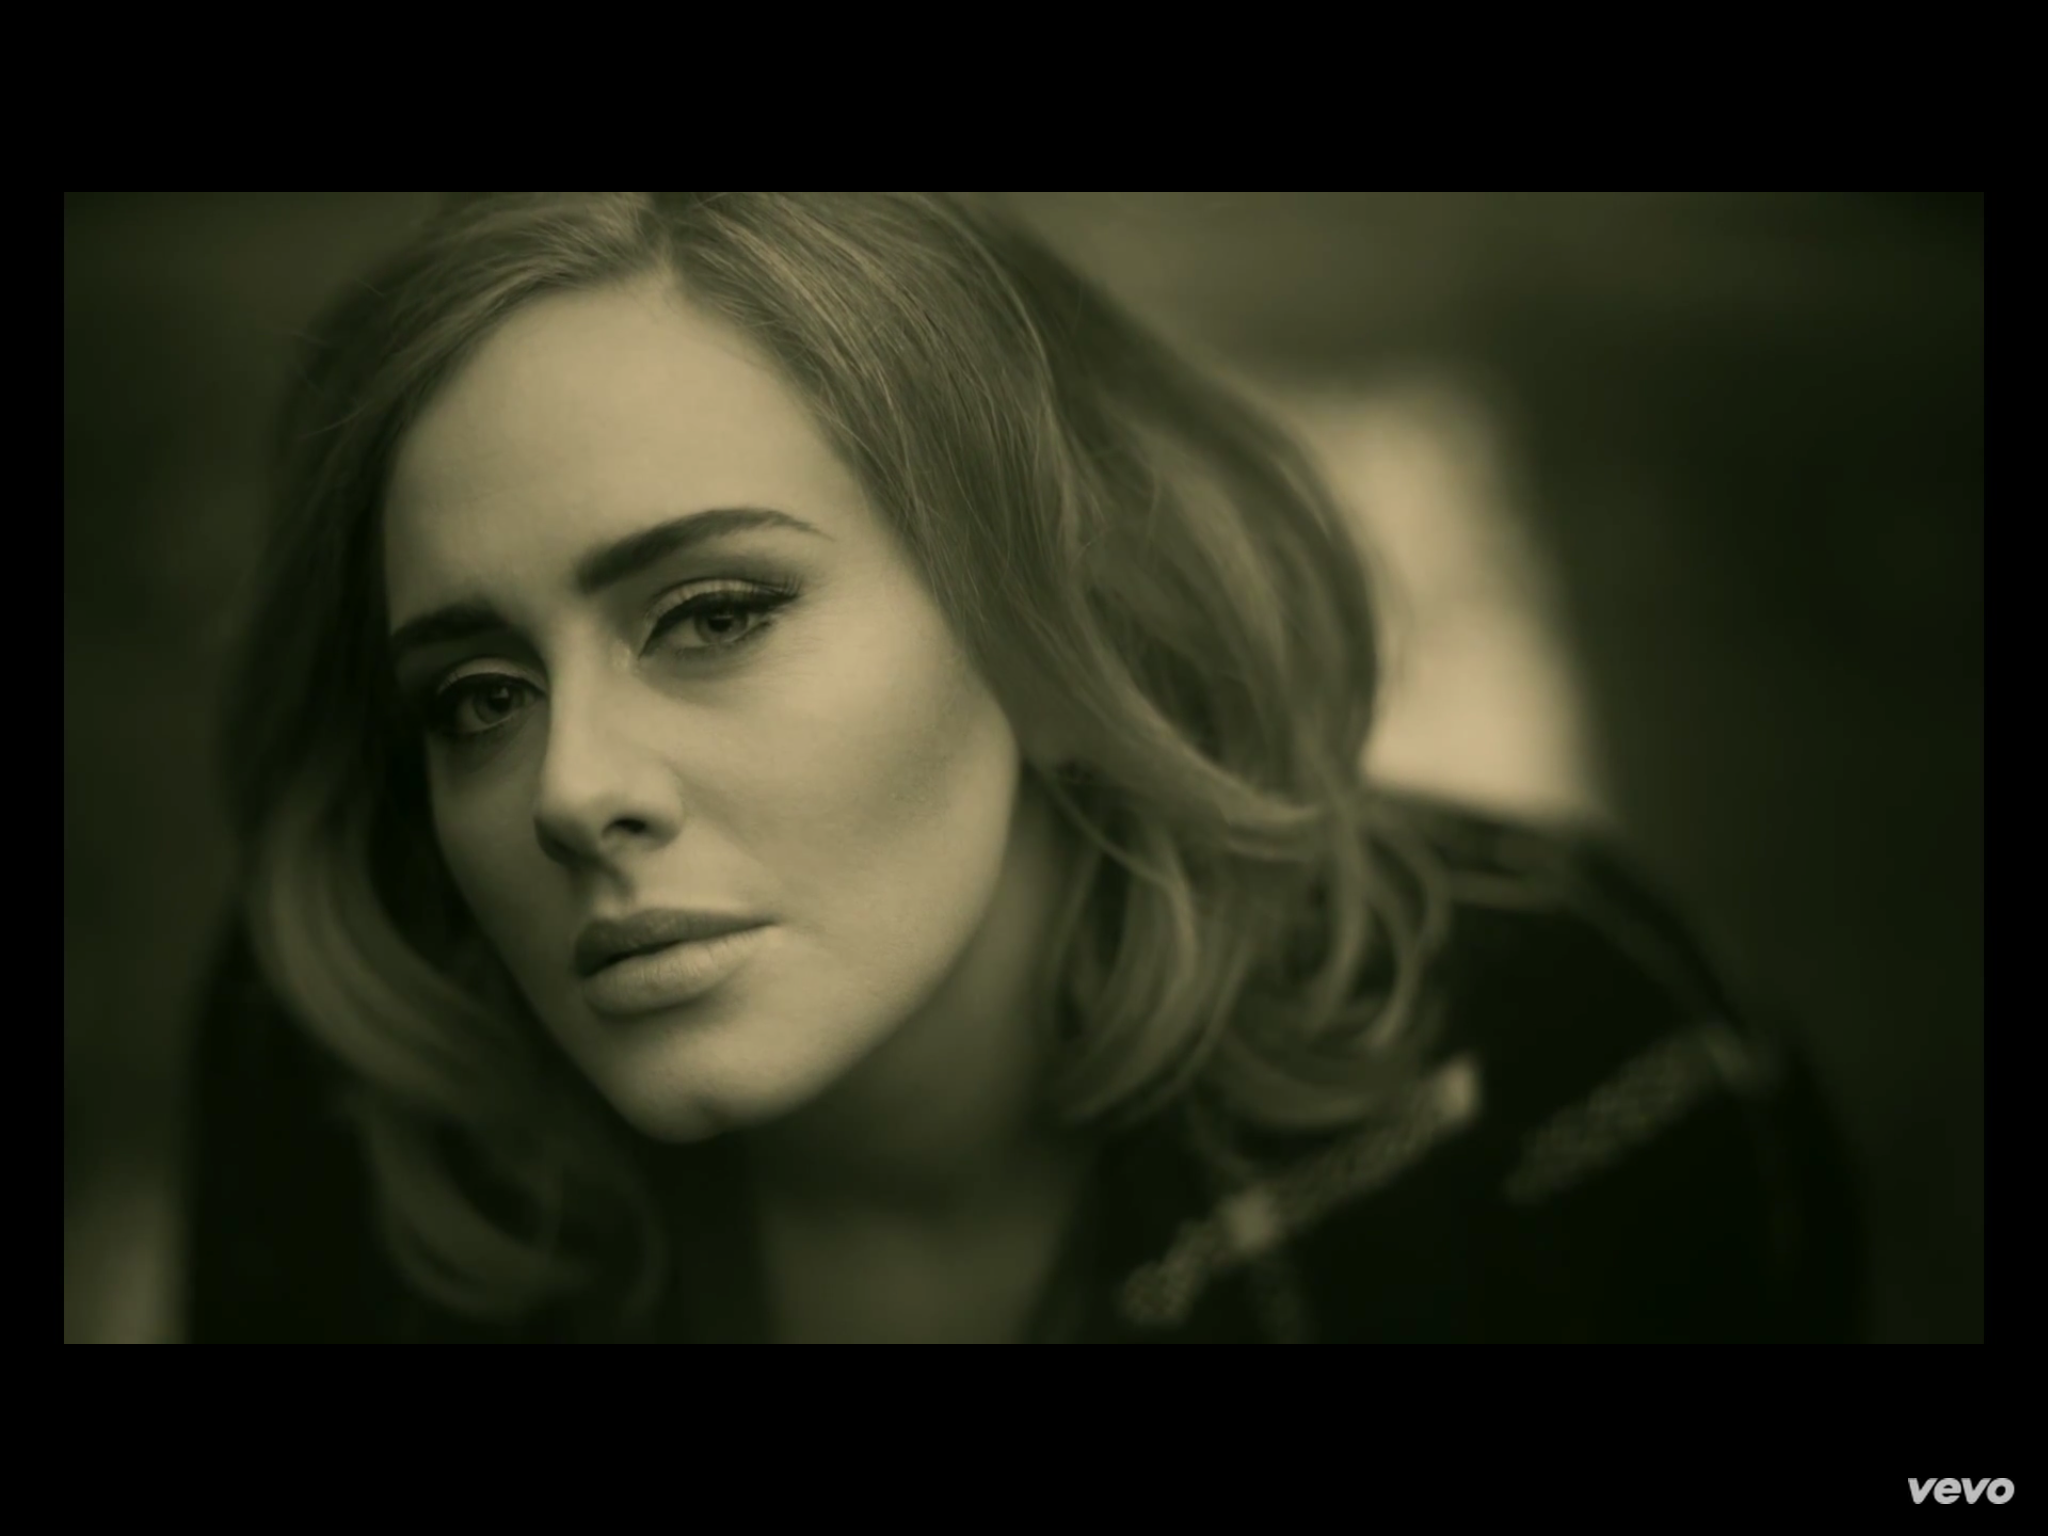 Adele 19 21 25 album New single New album 20 novembre Inghilterra